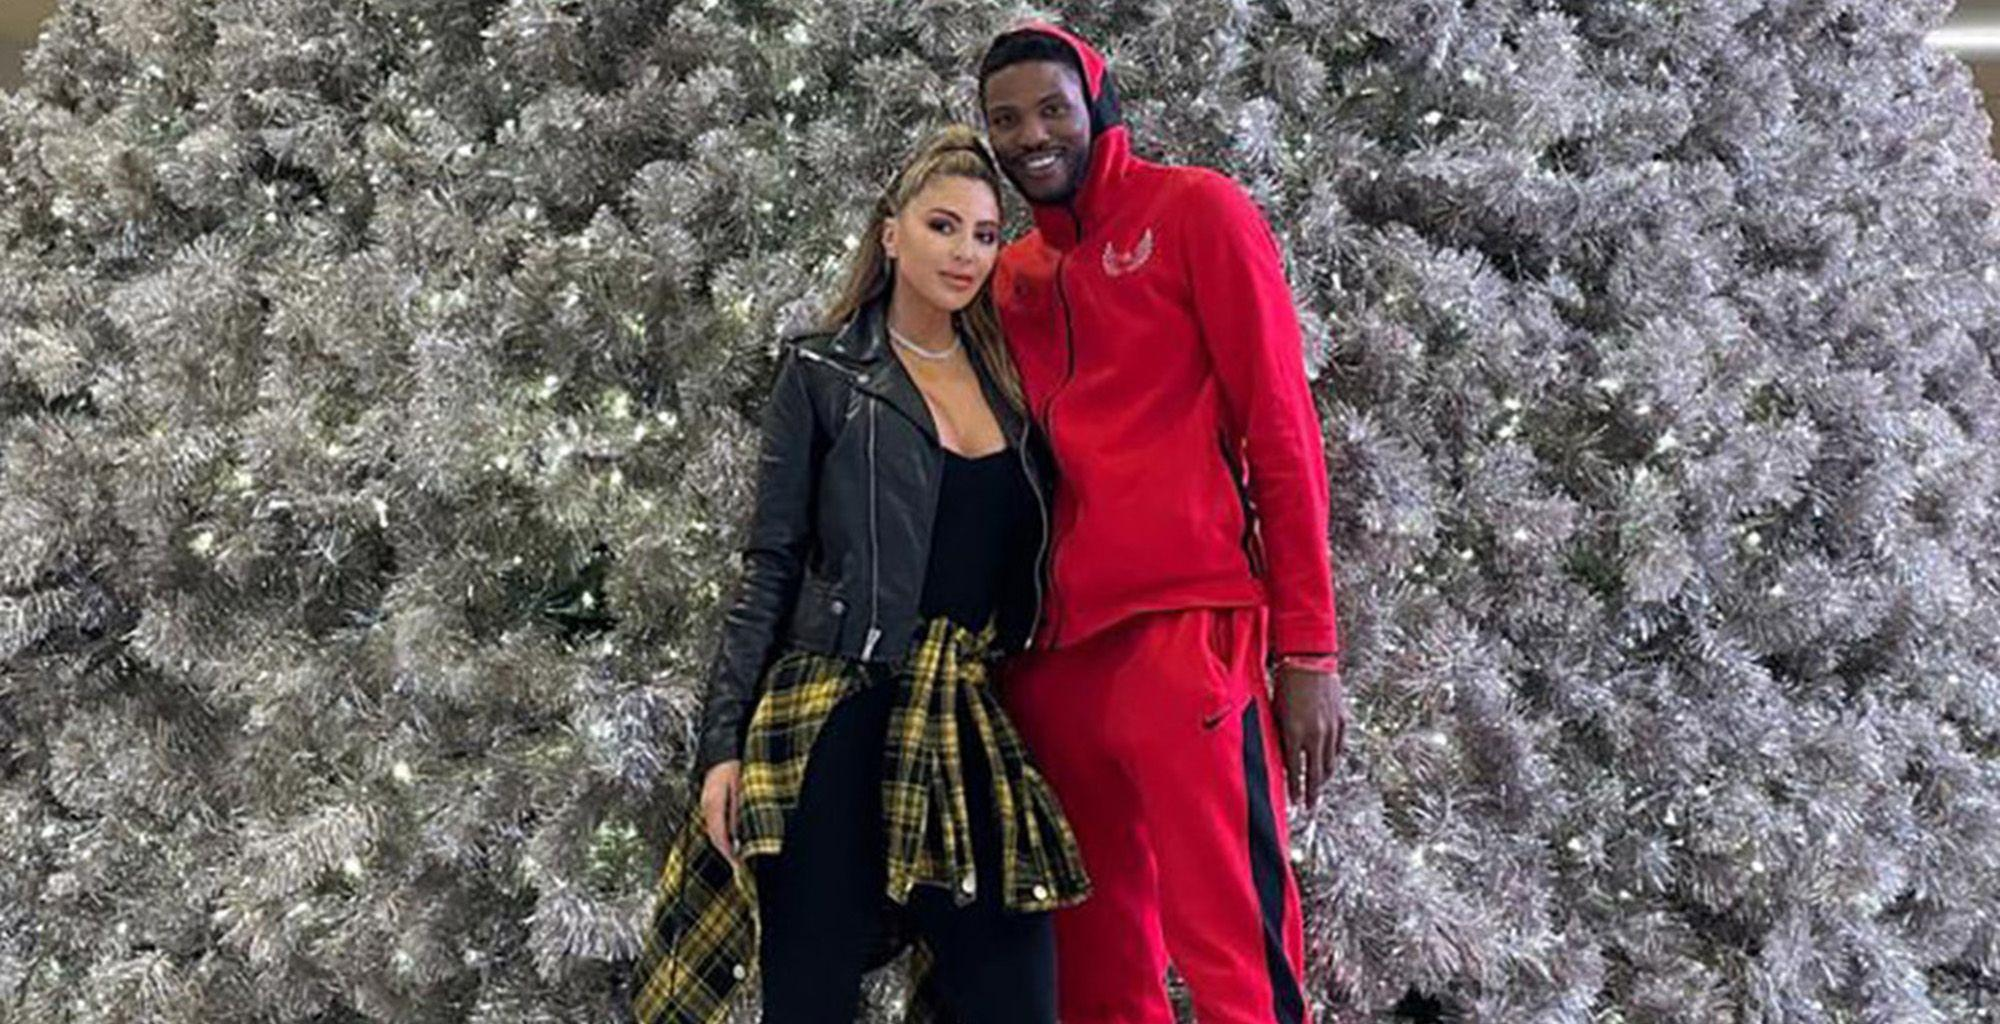 Larsa Pippen Says She And Malik Beasley Were Both Separated When They Began Dating -- Malik Beasley's Wife Threatens To Expose Her!